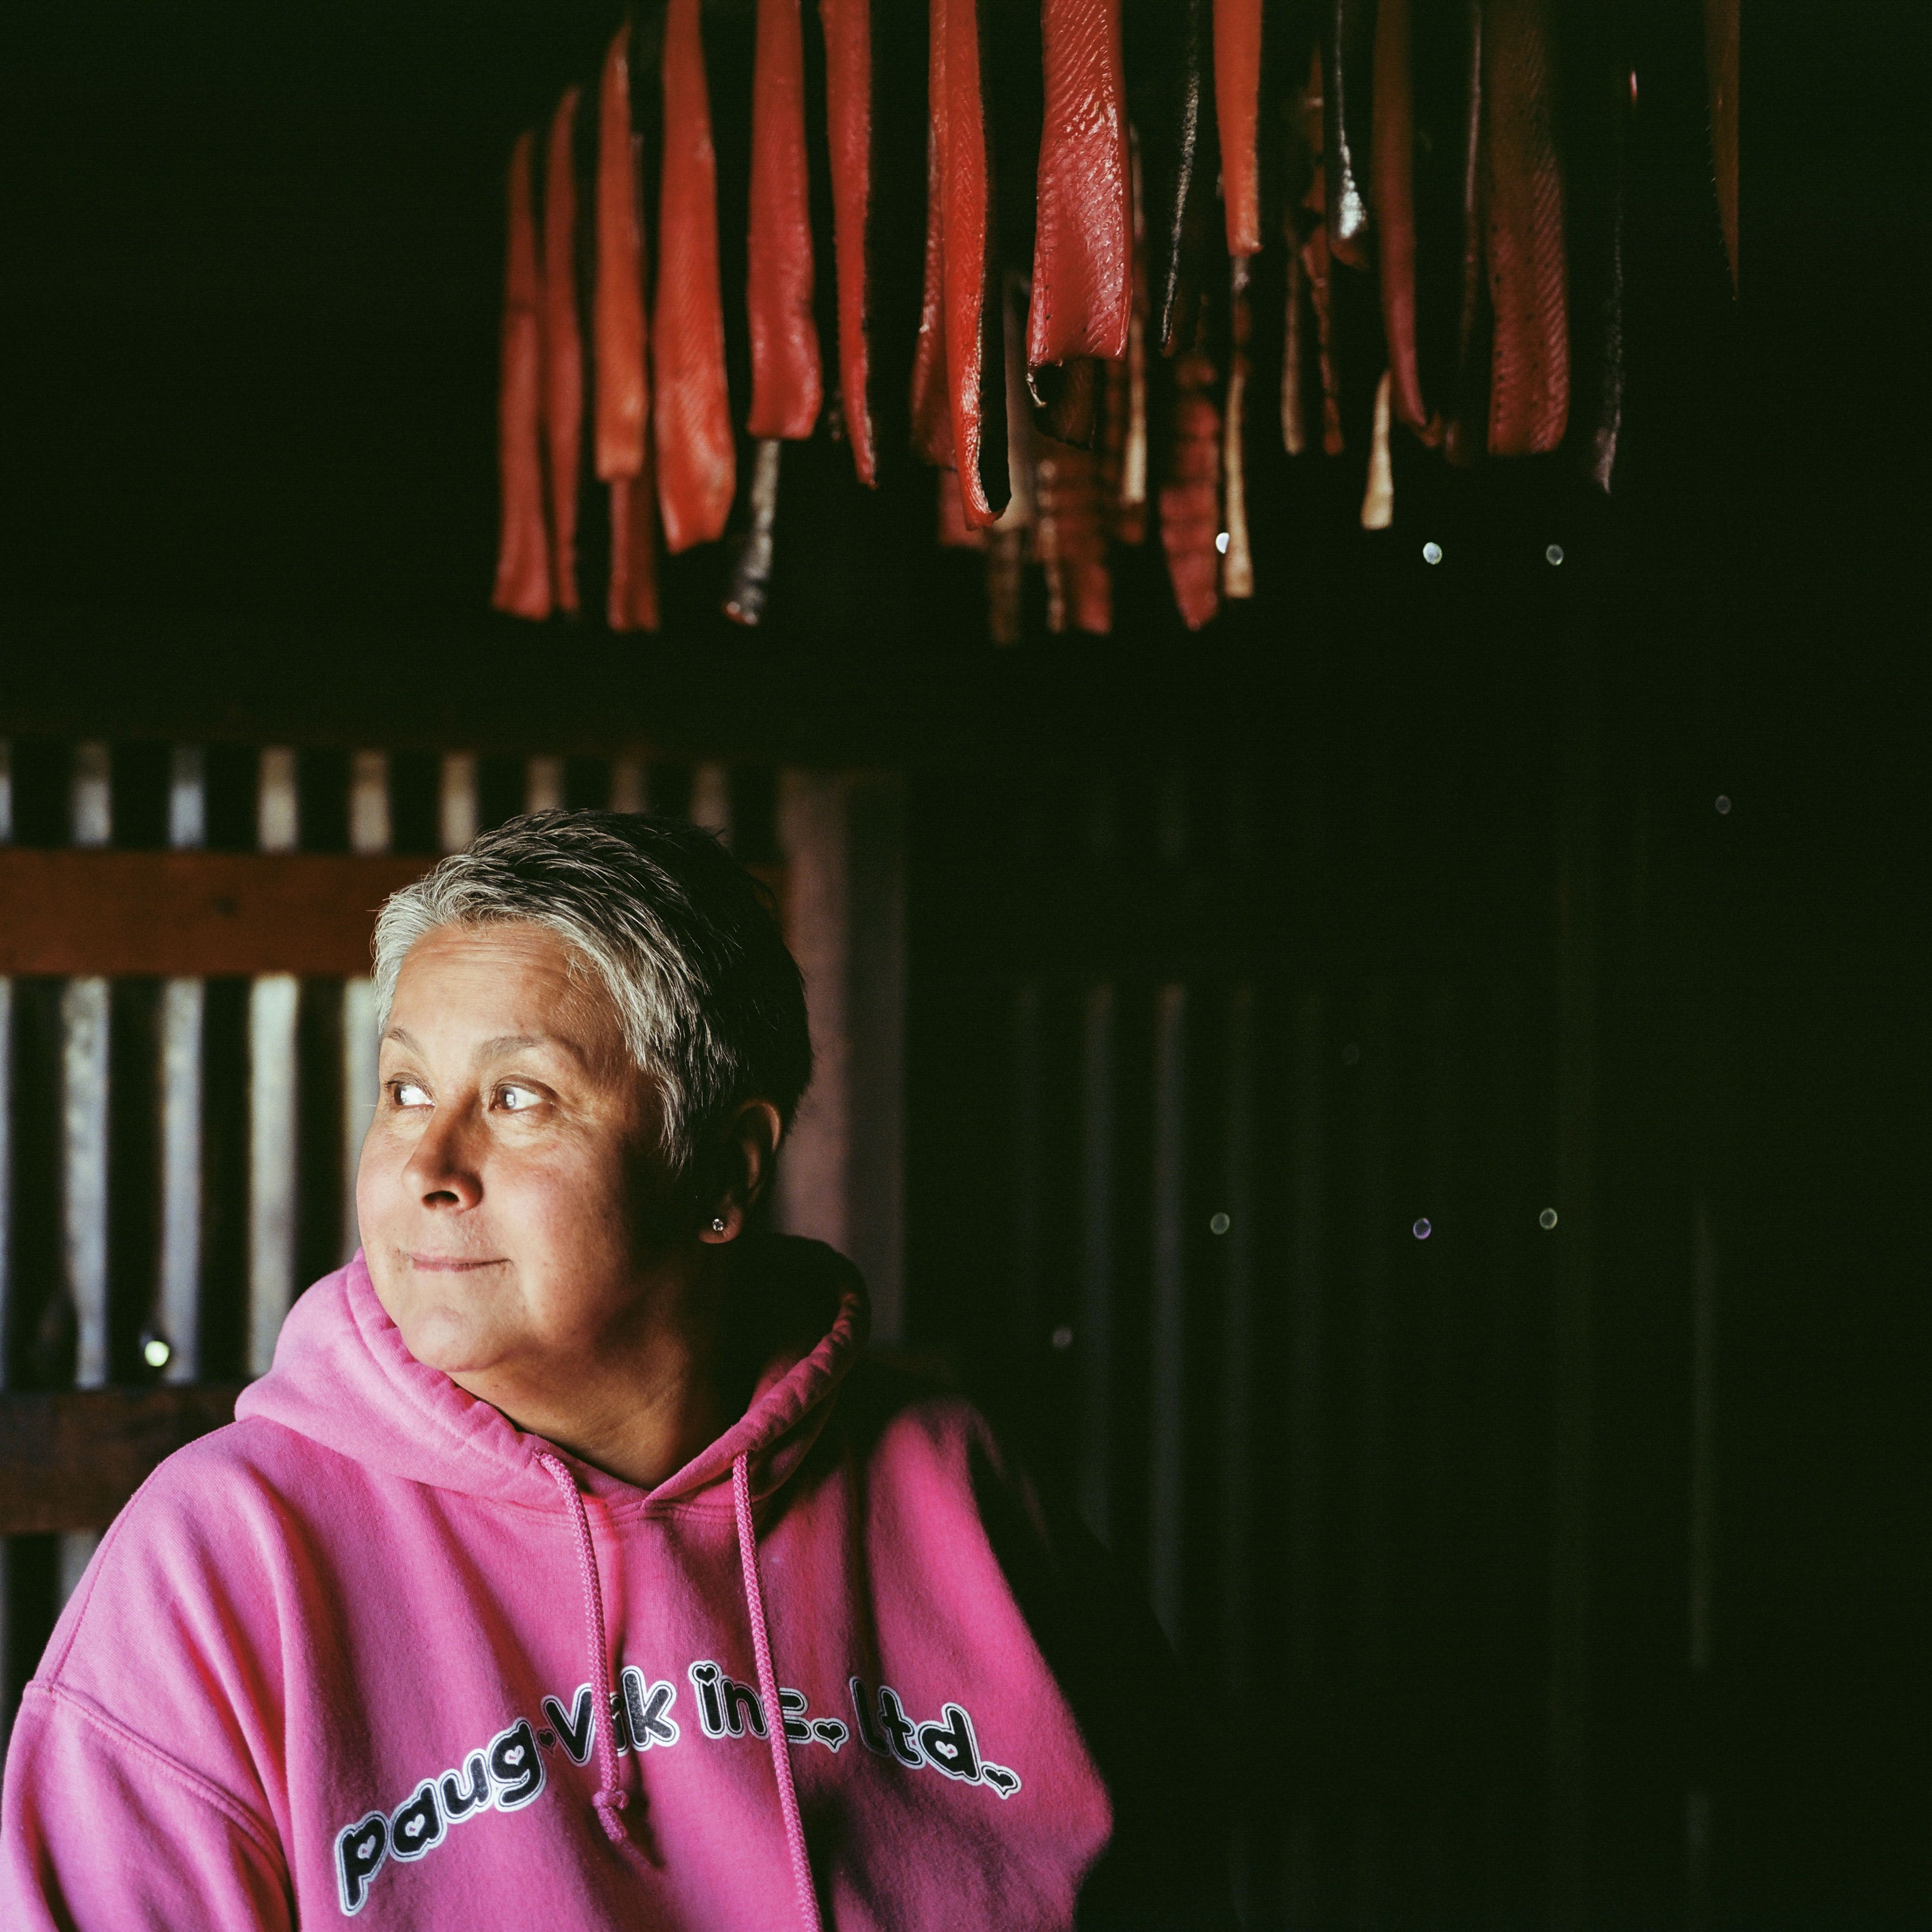 woman in sweatshirt below hanging red strips of fish